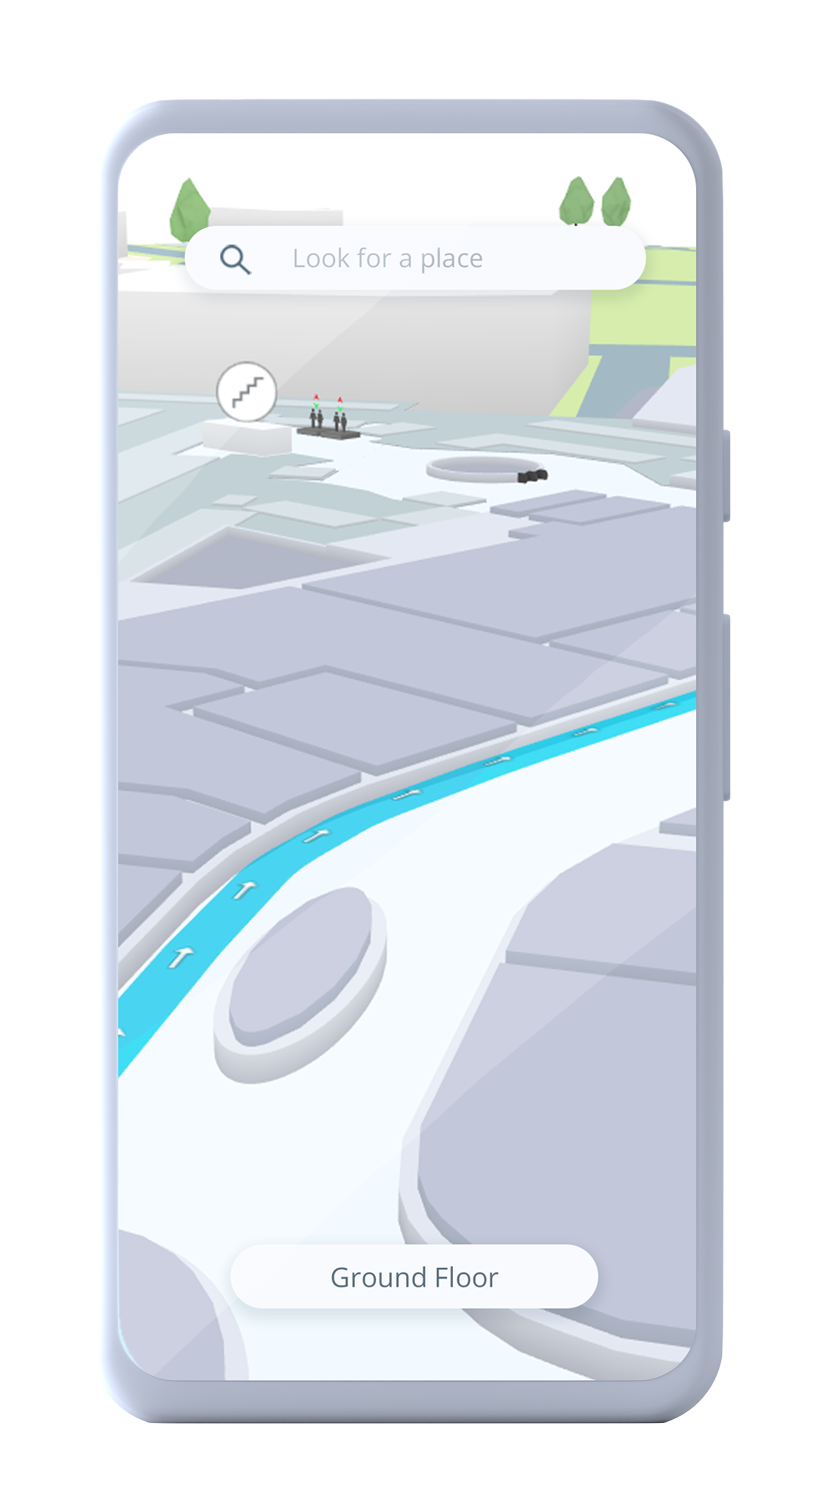 Indoor mapping visualization on mobile